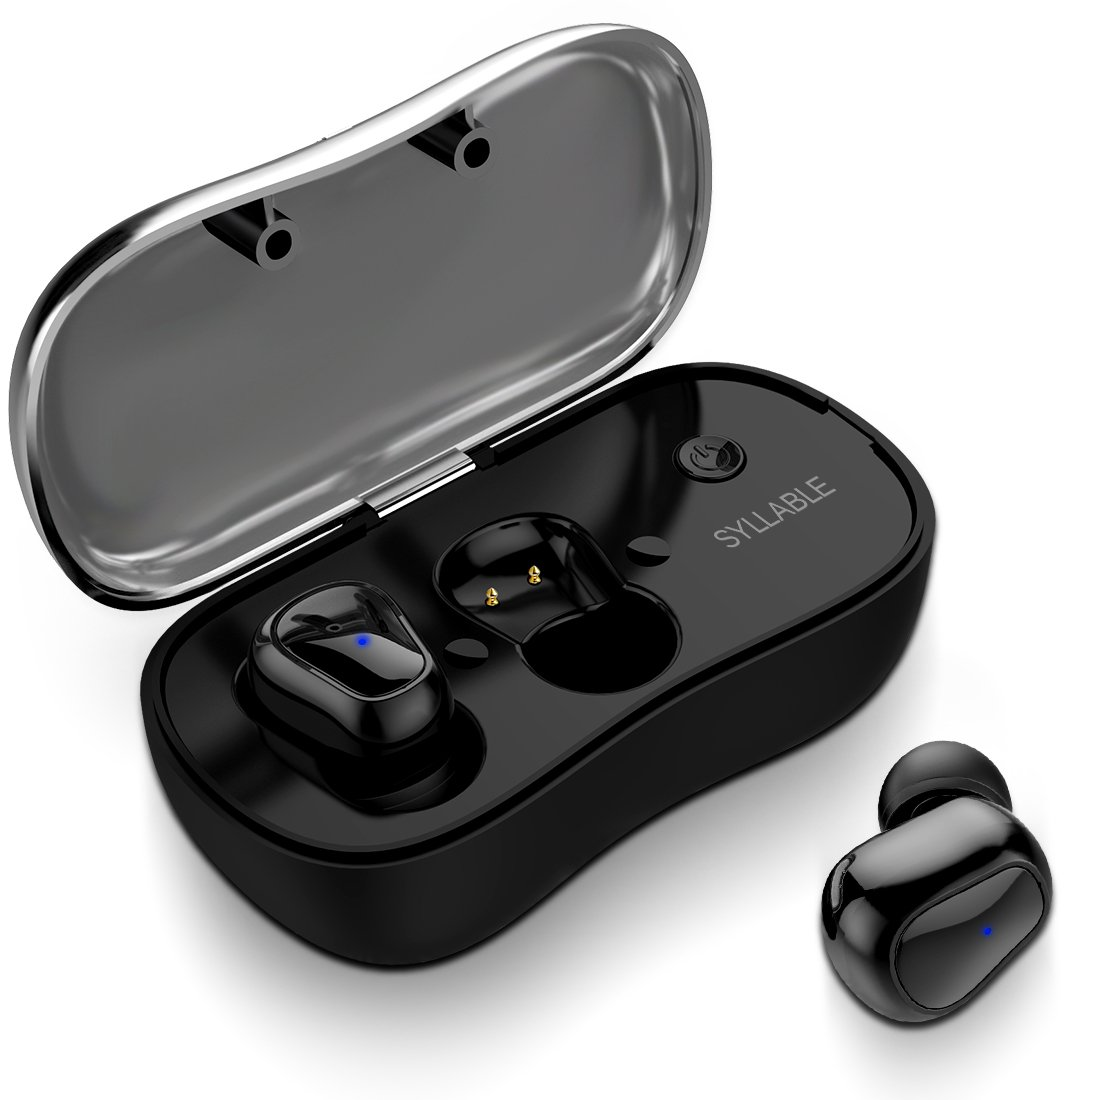 Wireless Earbuds, Bluetooth Headphones with Mic HiFi Sound Sweatproof Sports Ear Pods with Charging Case for Android Apple iPhone, Black